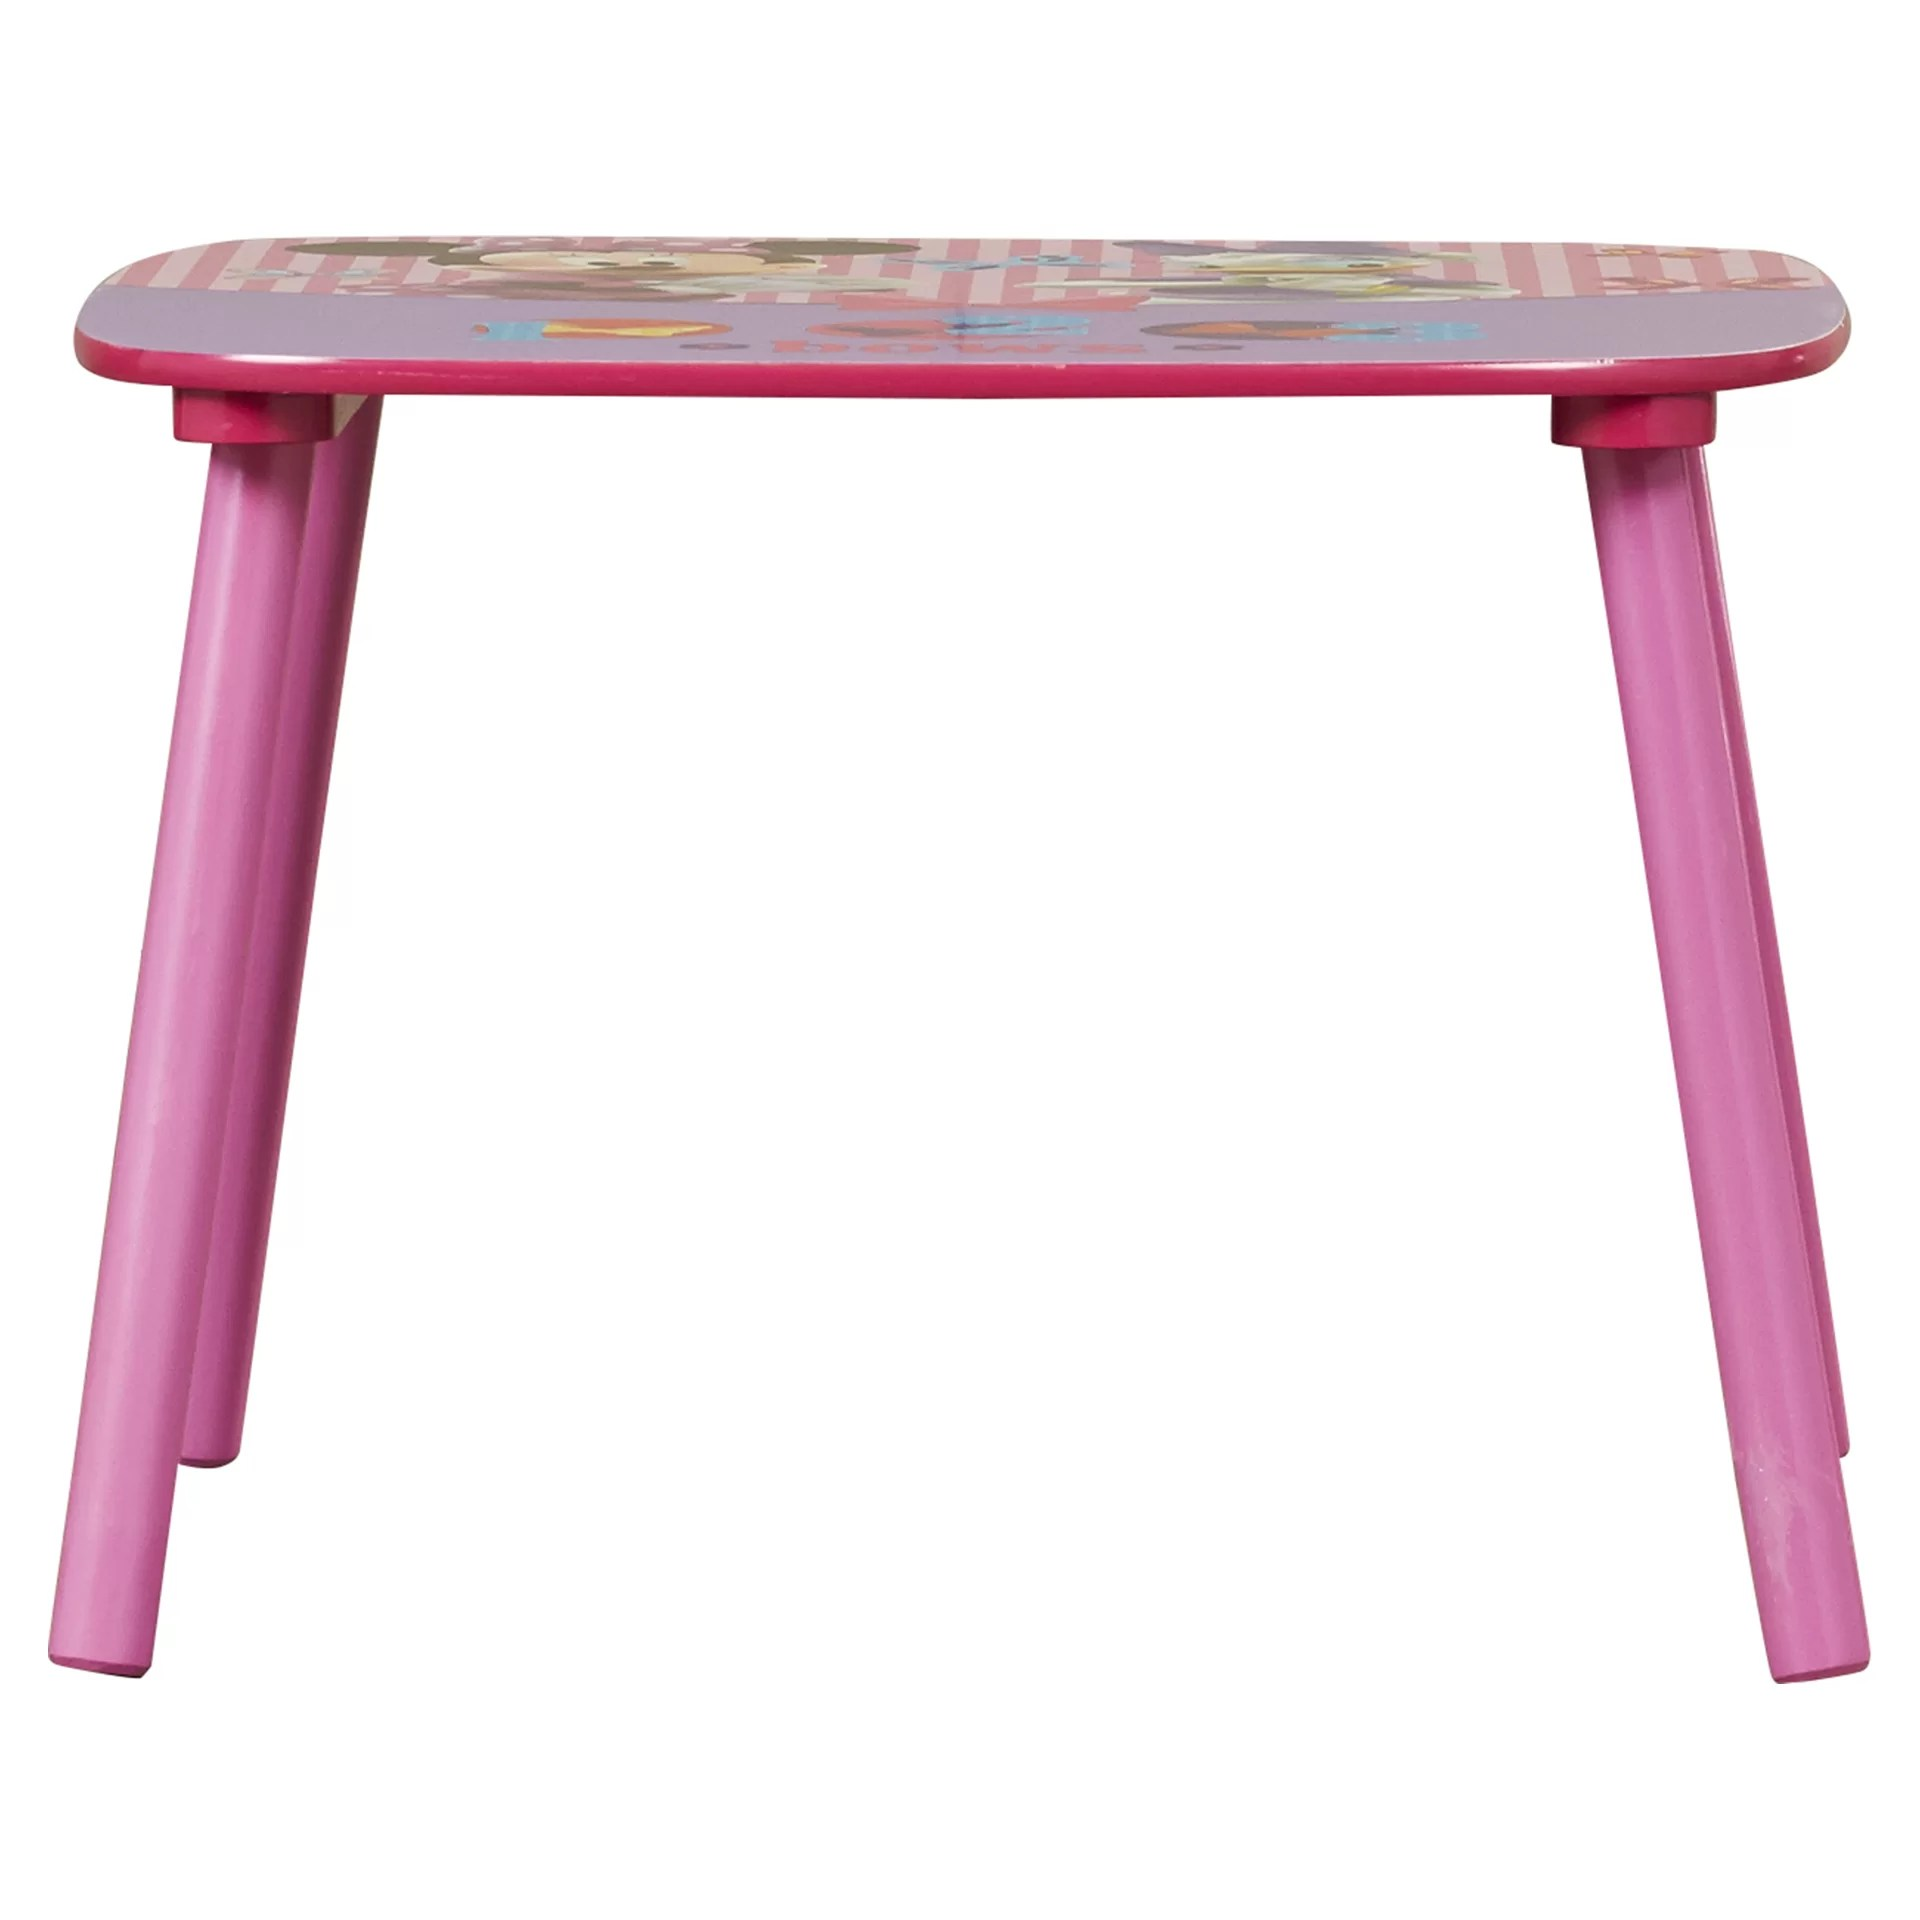 minnie table and chairs chair yoga videos delta children mouse kids 3 piece